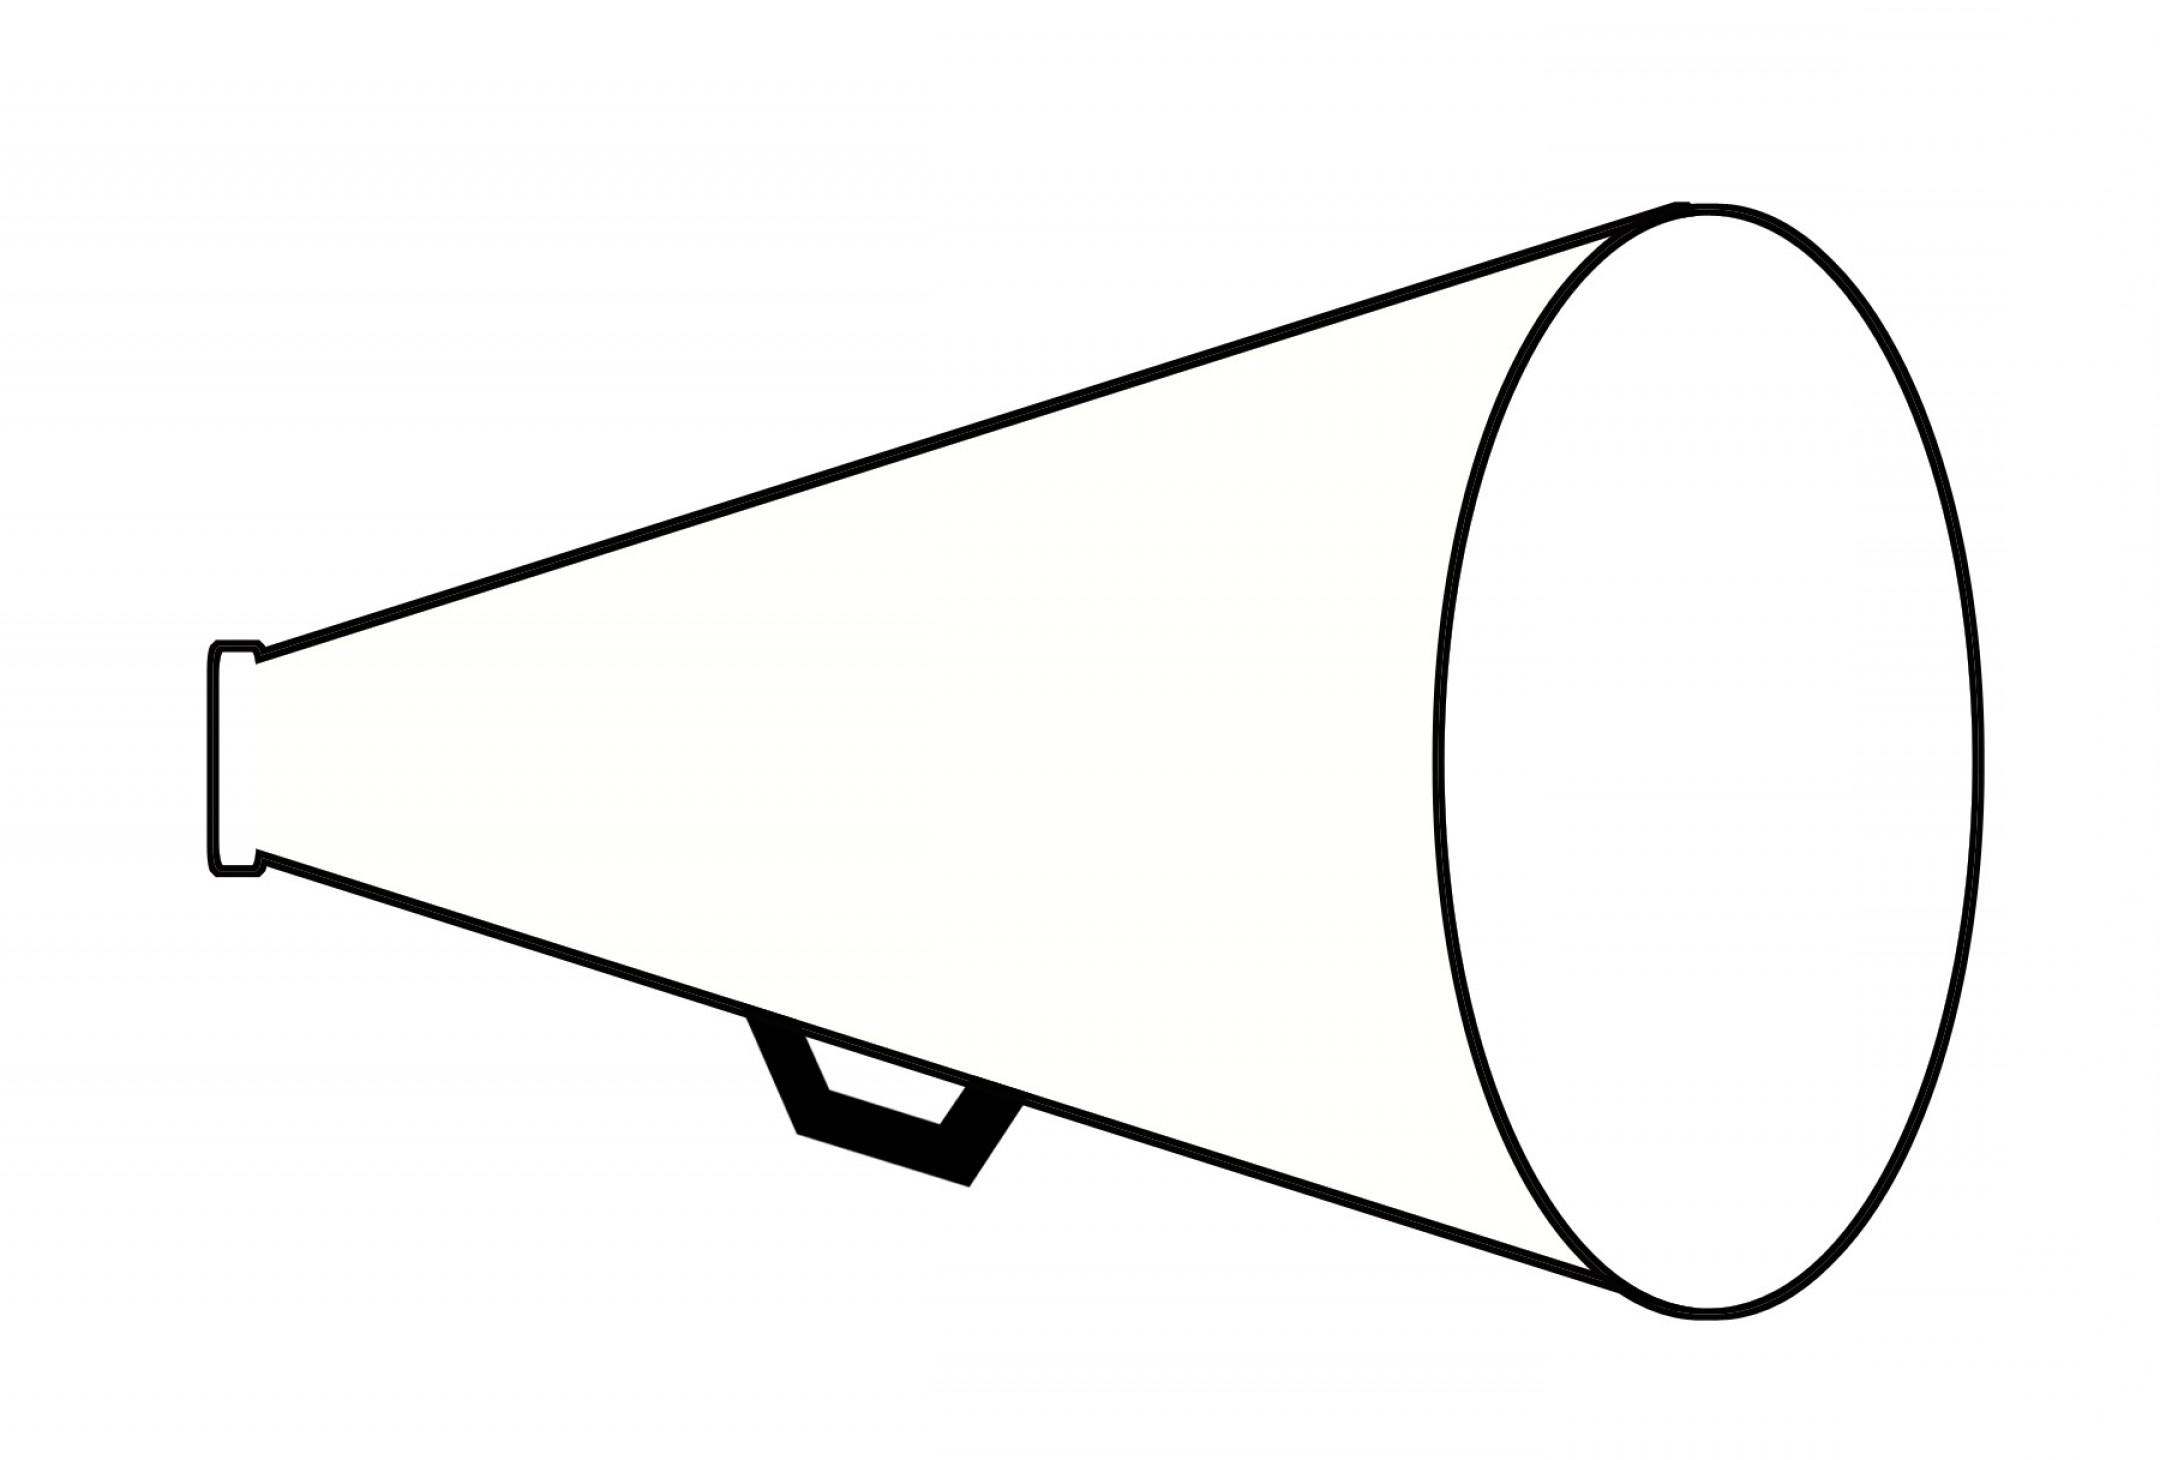 Black and white megaphone clipart svg transparent library Megaphone Clip Art Black And White | SOIDERGI svg transparent library